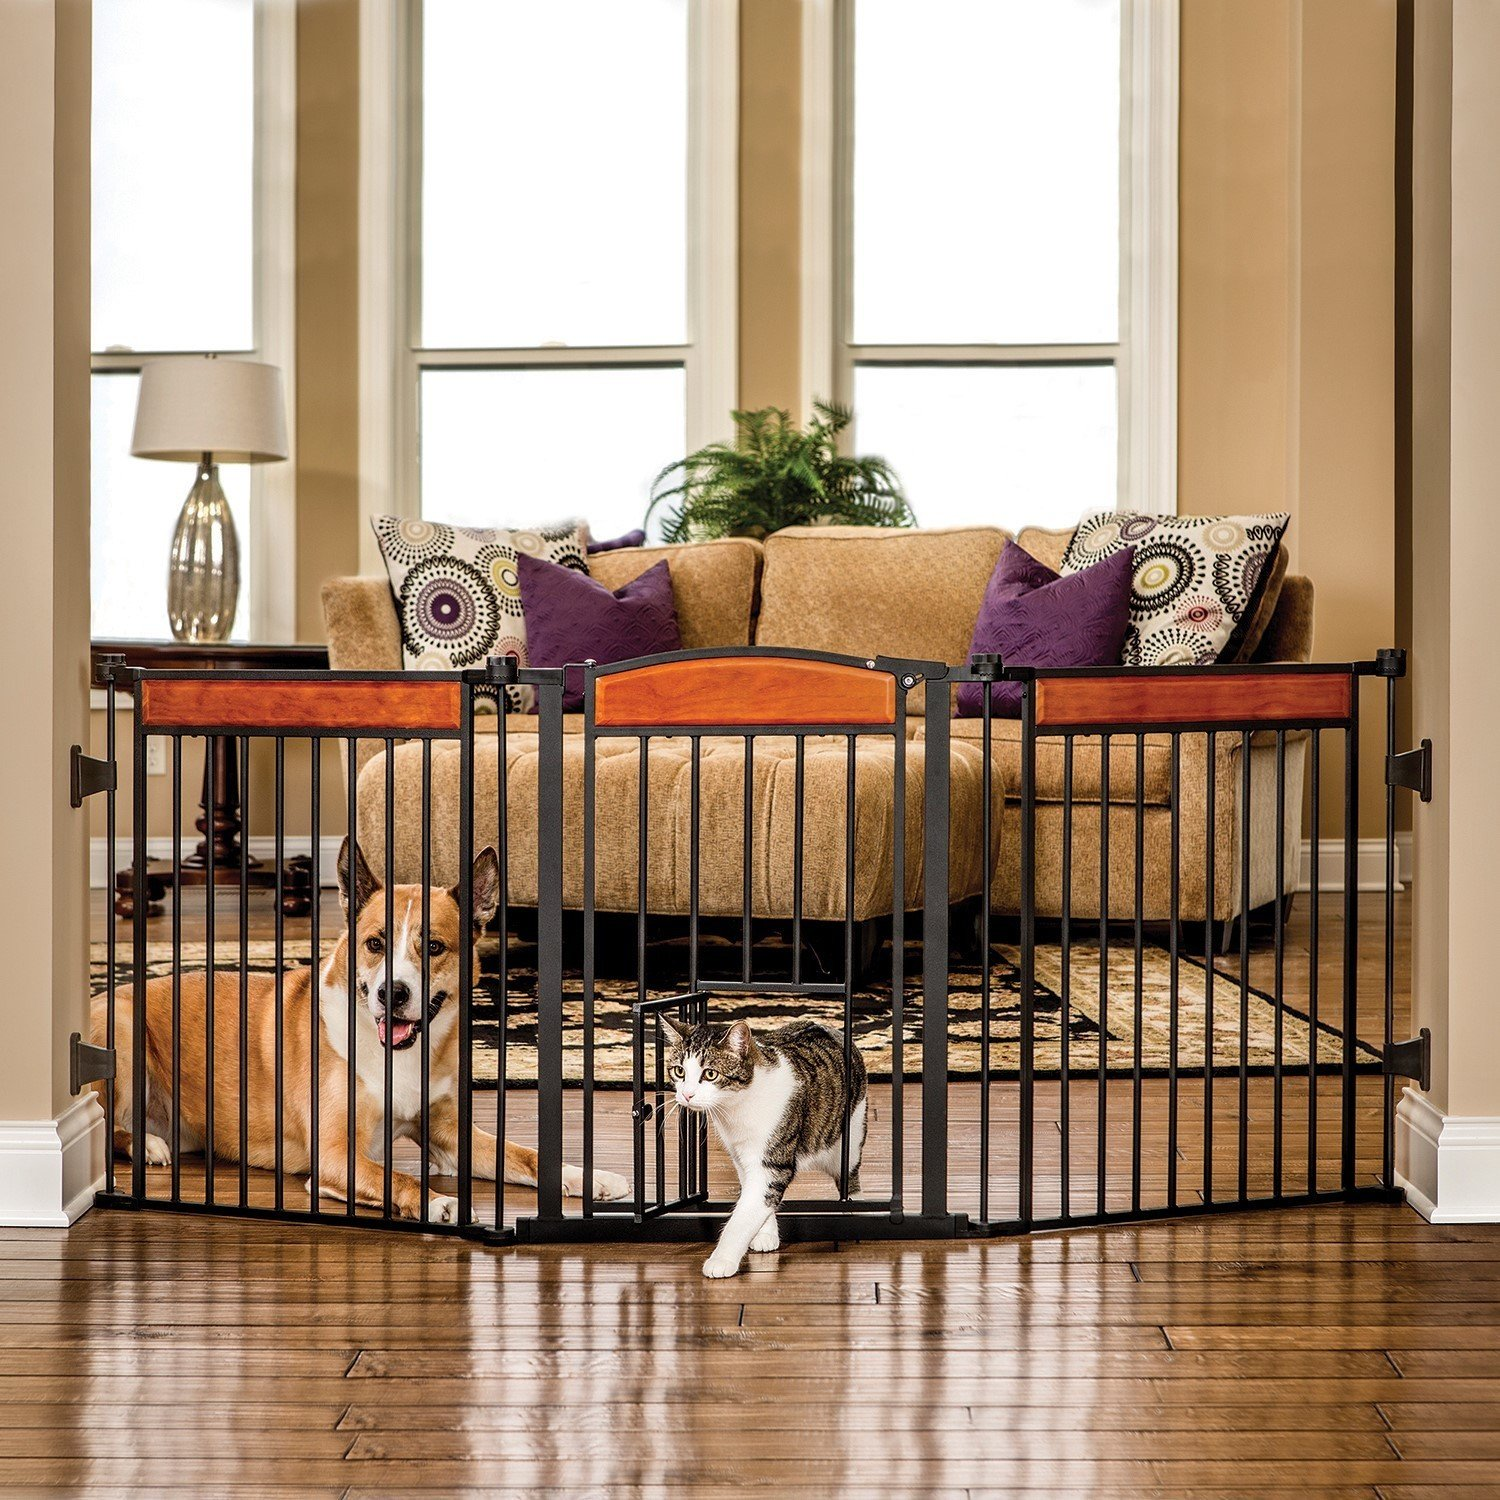 Sturdy, Durable Reliable Easy Set Up, Care And Store Paw Arched Flexi Pet Gate BLACK – Great For Keeping Small Children And Pets Safe